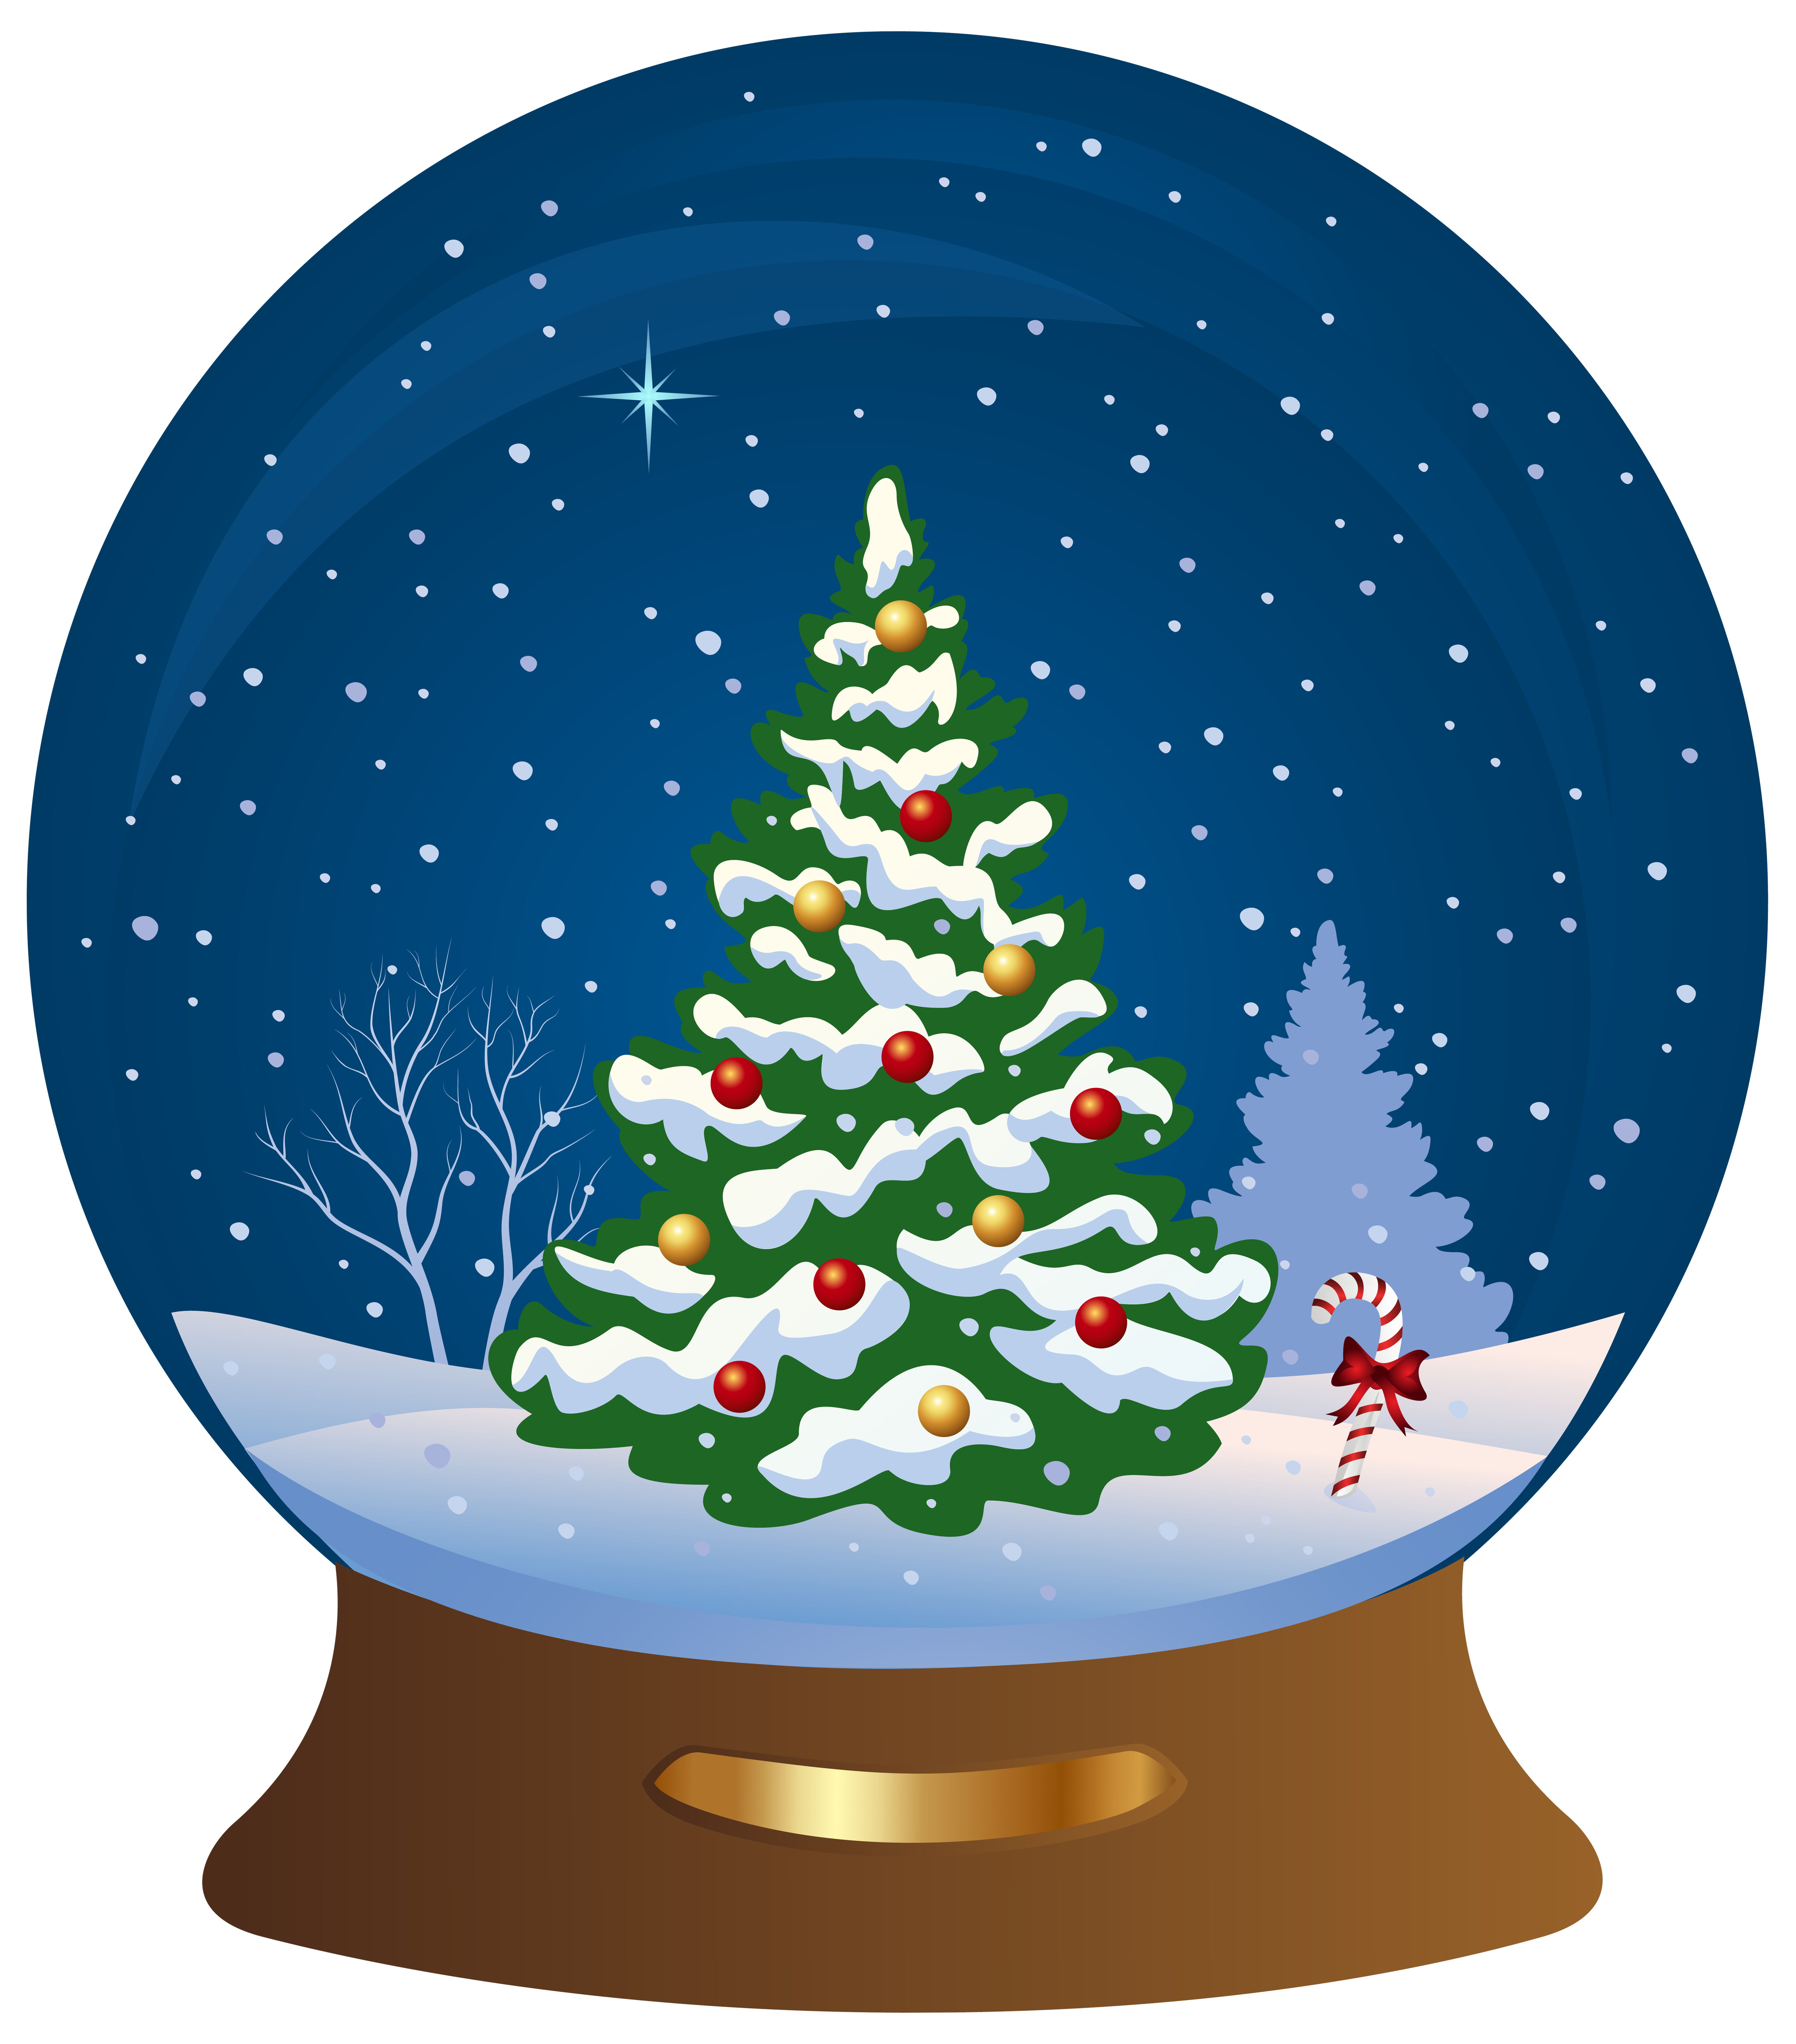 Snowflake globe clipart png royalty free stock 28+ Collection of Christmas Snow Globe Clipart | High quality, free ... png royalty free stock